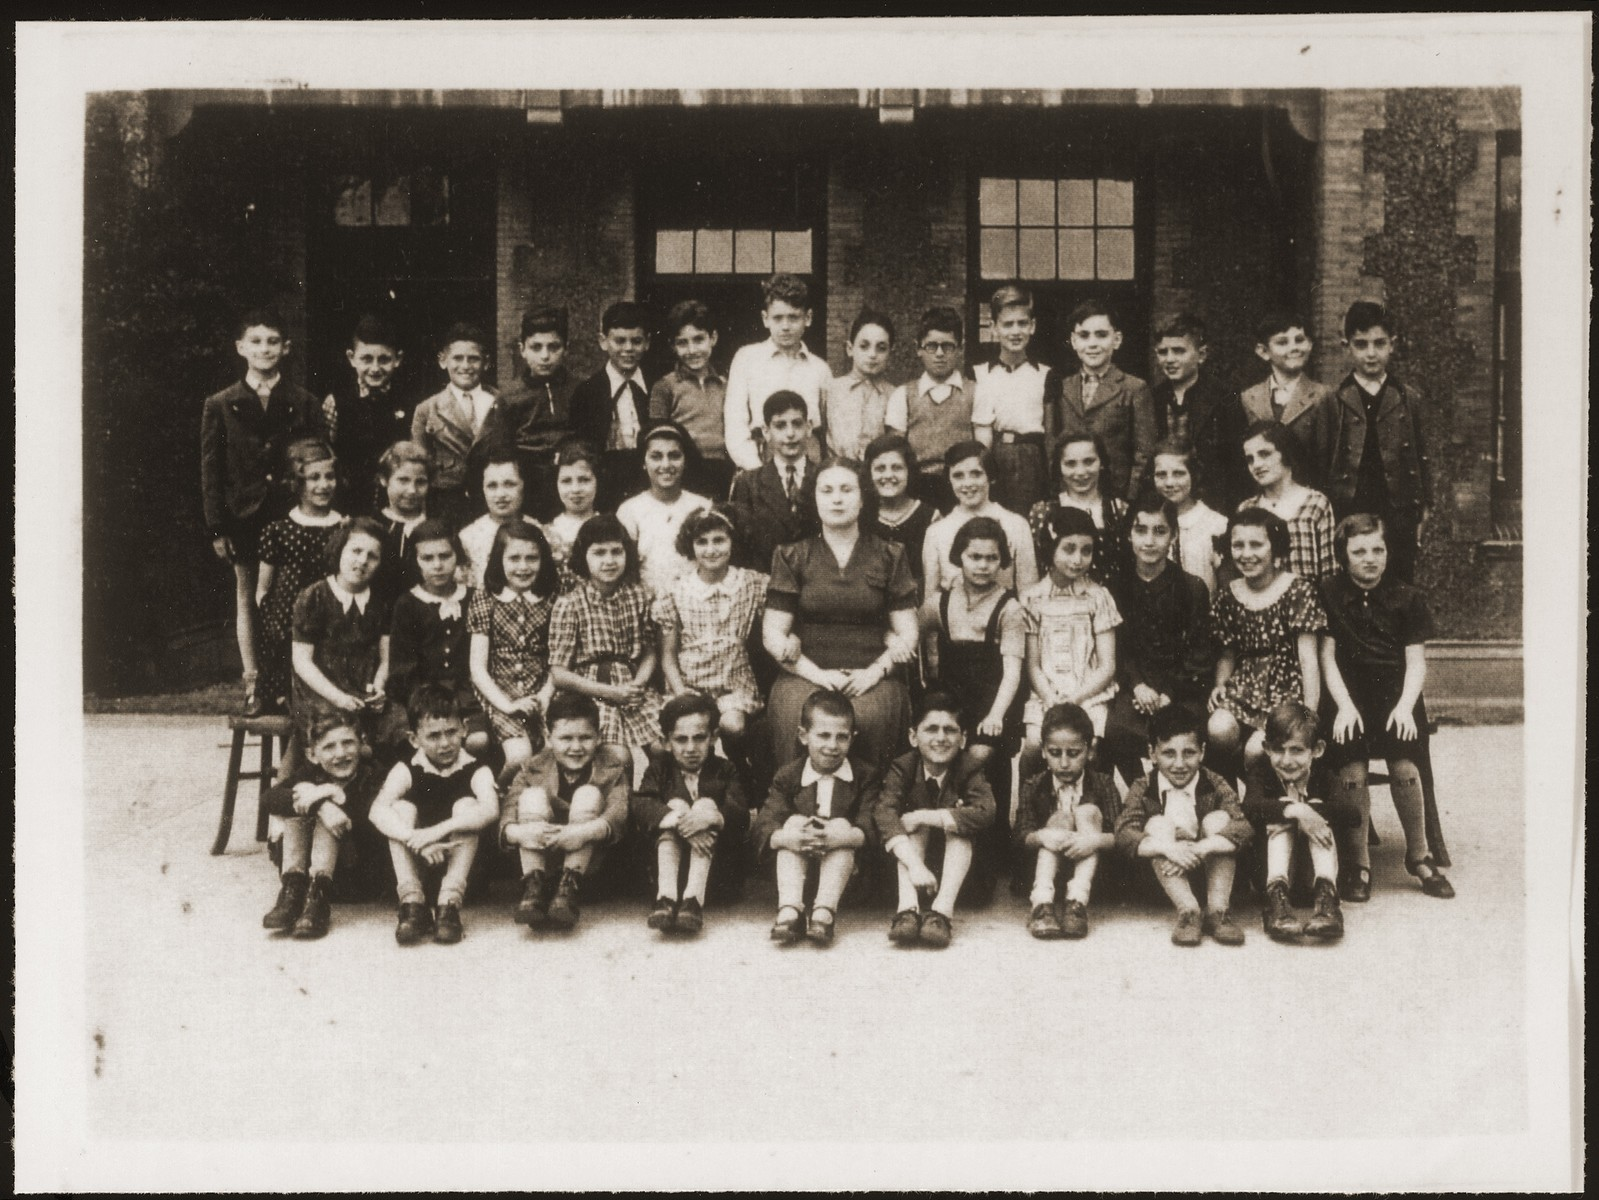 A school class of Jewish refugee children, including Hannelore Mansbacher (seated 2nd row, on the end at far right), at Transition Upper school on Kinchow Road in Shanghai.